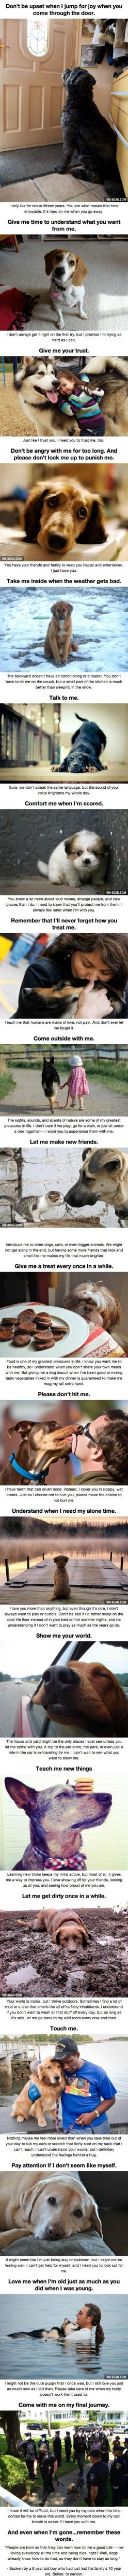 The 20 Important Facts Dog Lovers Must Never Forget - Just DWL || The Ultimate Trolling  The best way to help the planet, is to control what you consume. Check out some of our vegan recipes at yummspiration.com We are also on facebook.com/yummspiration: D